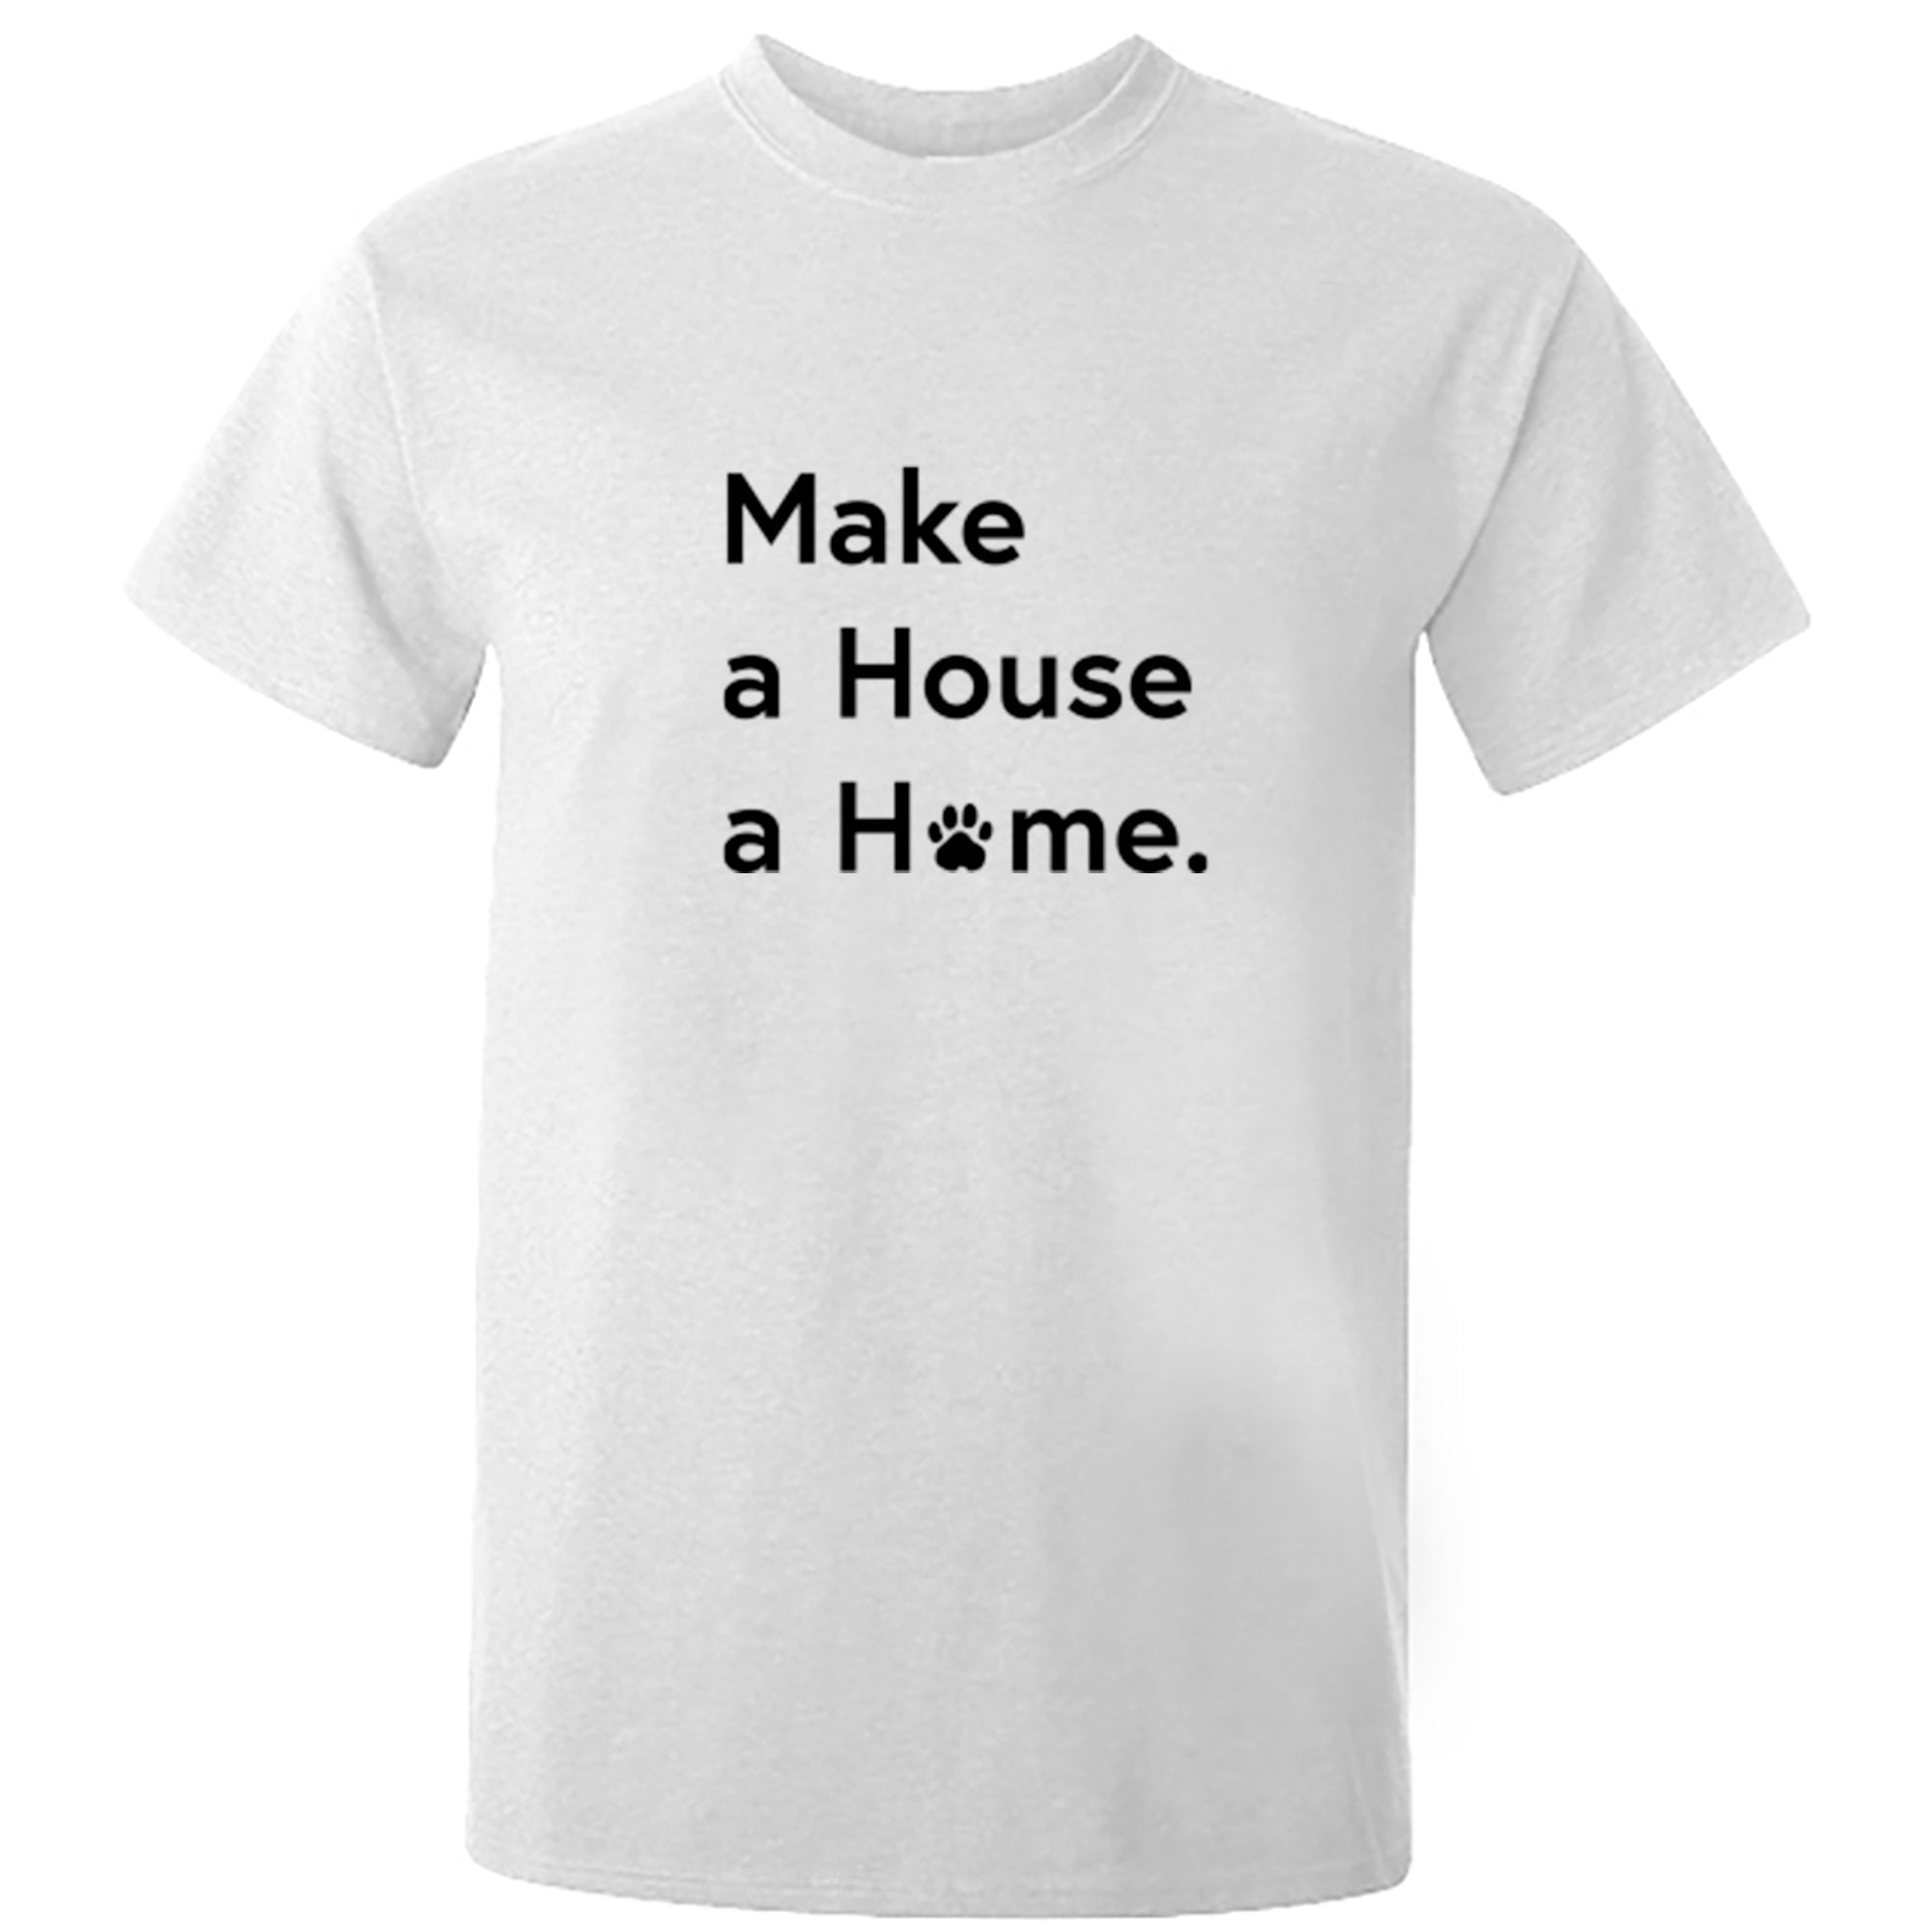 Make A House A Home Unisex Fit T-Shirt A0075